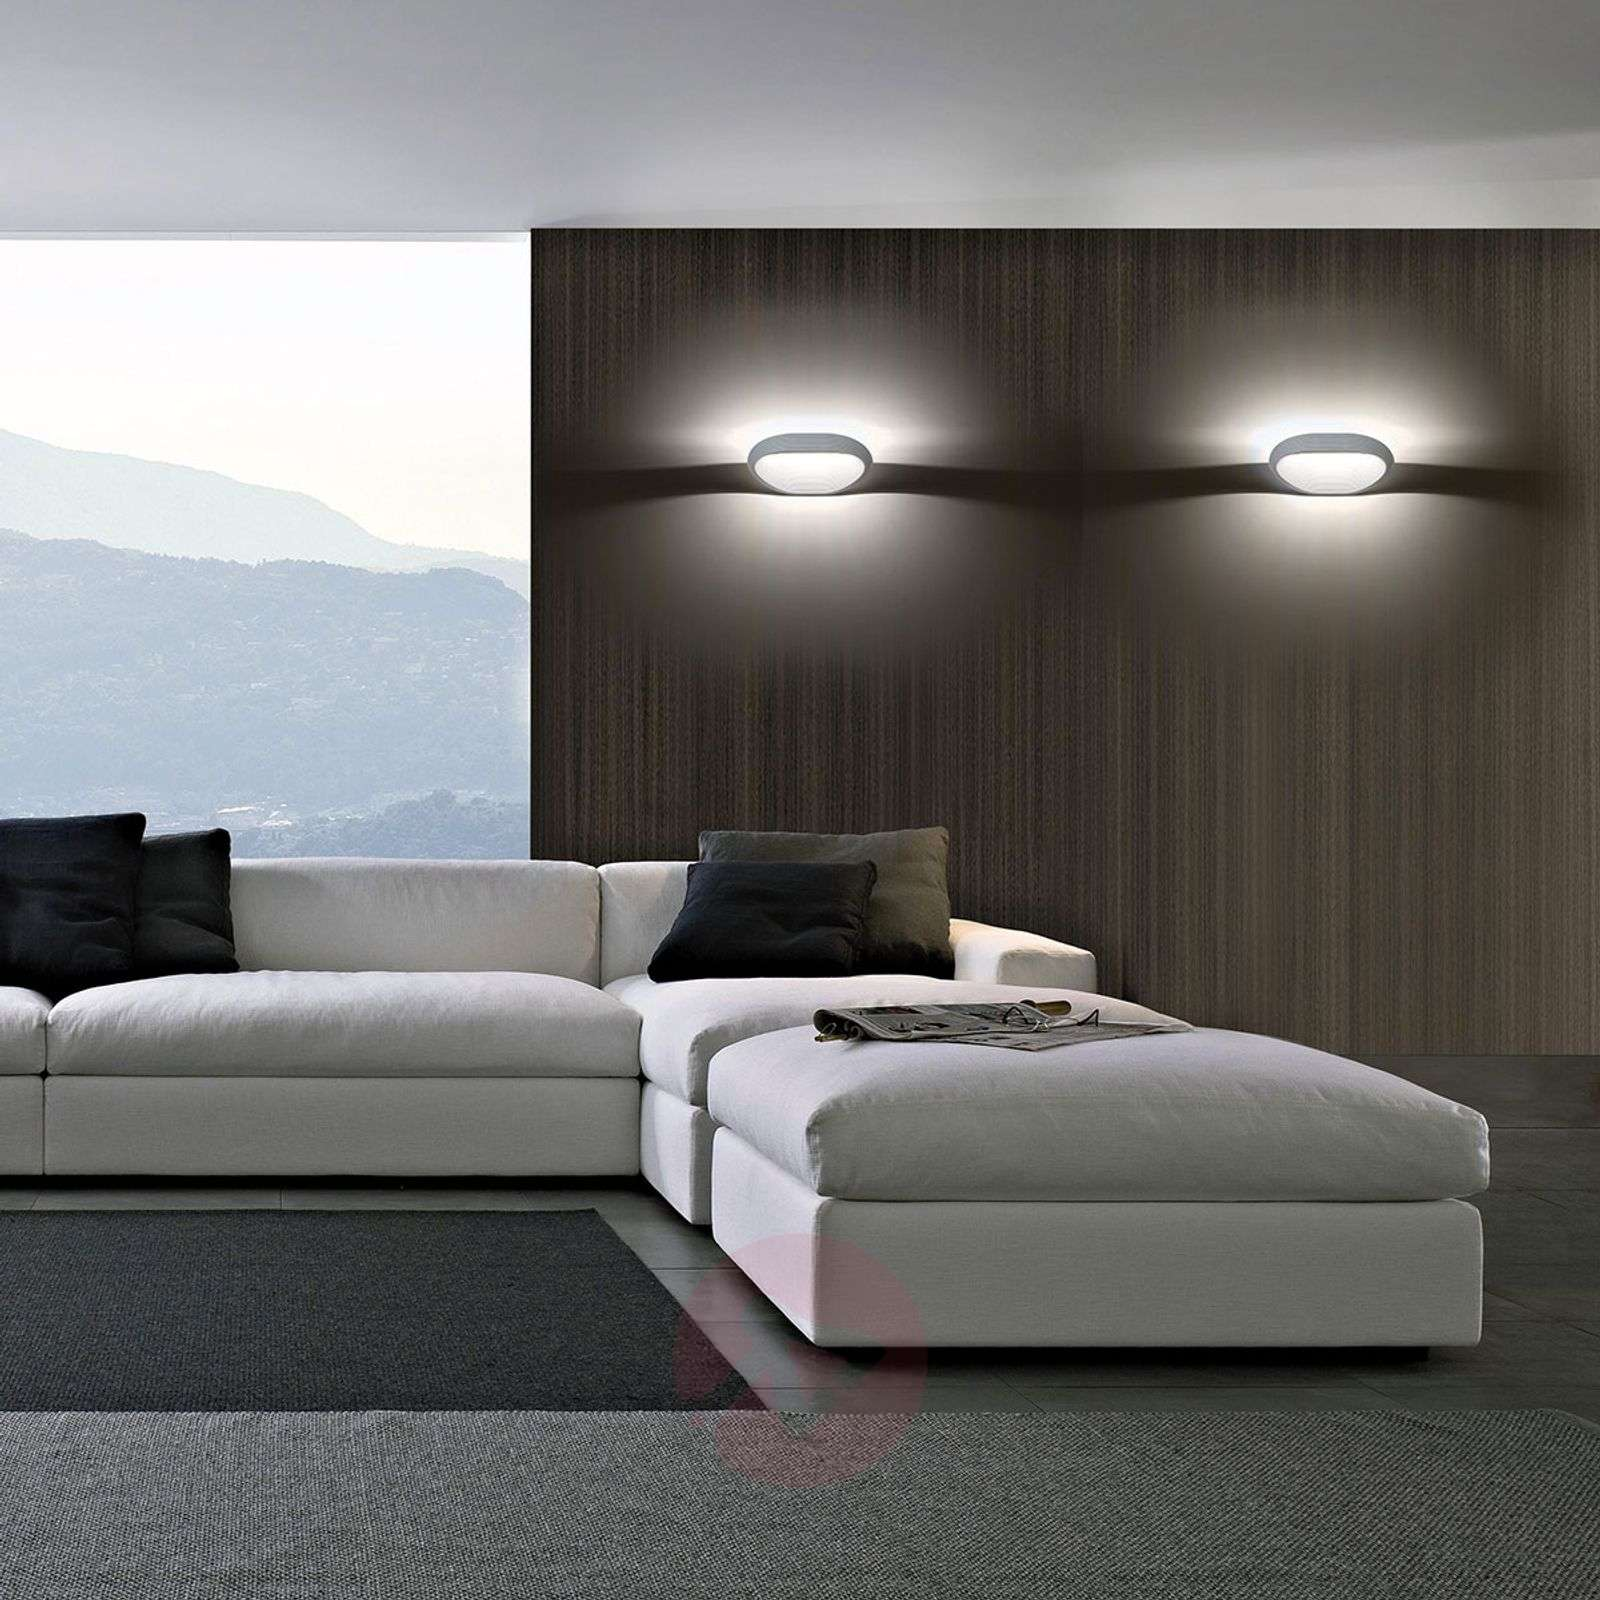 CiniandNils Sestessina applique LED, Casambi-2028080-01